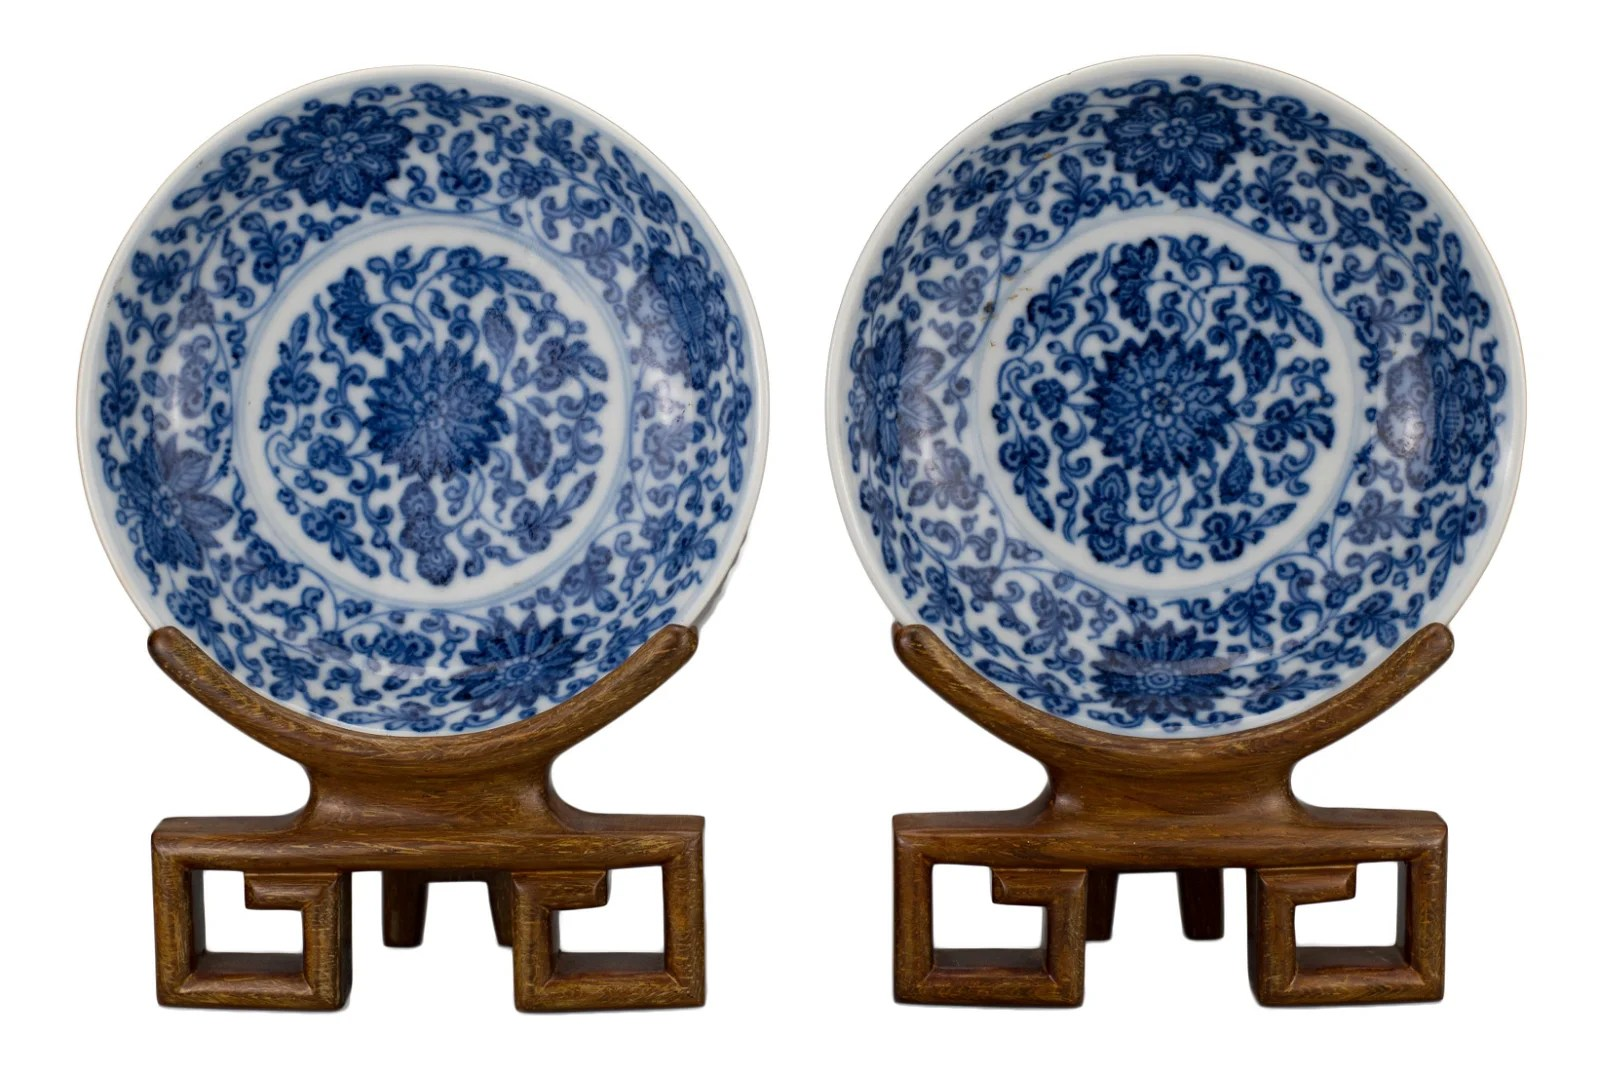 PAIR OF CHINESE BLUE AND WHITE PORCELAIN DISHES,